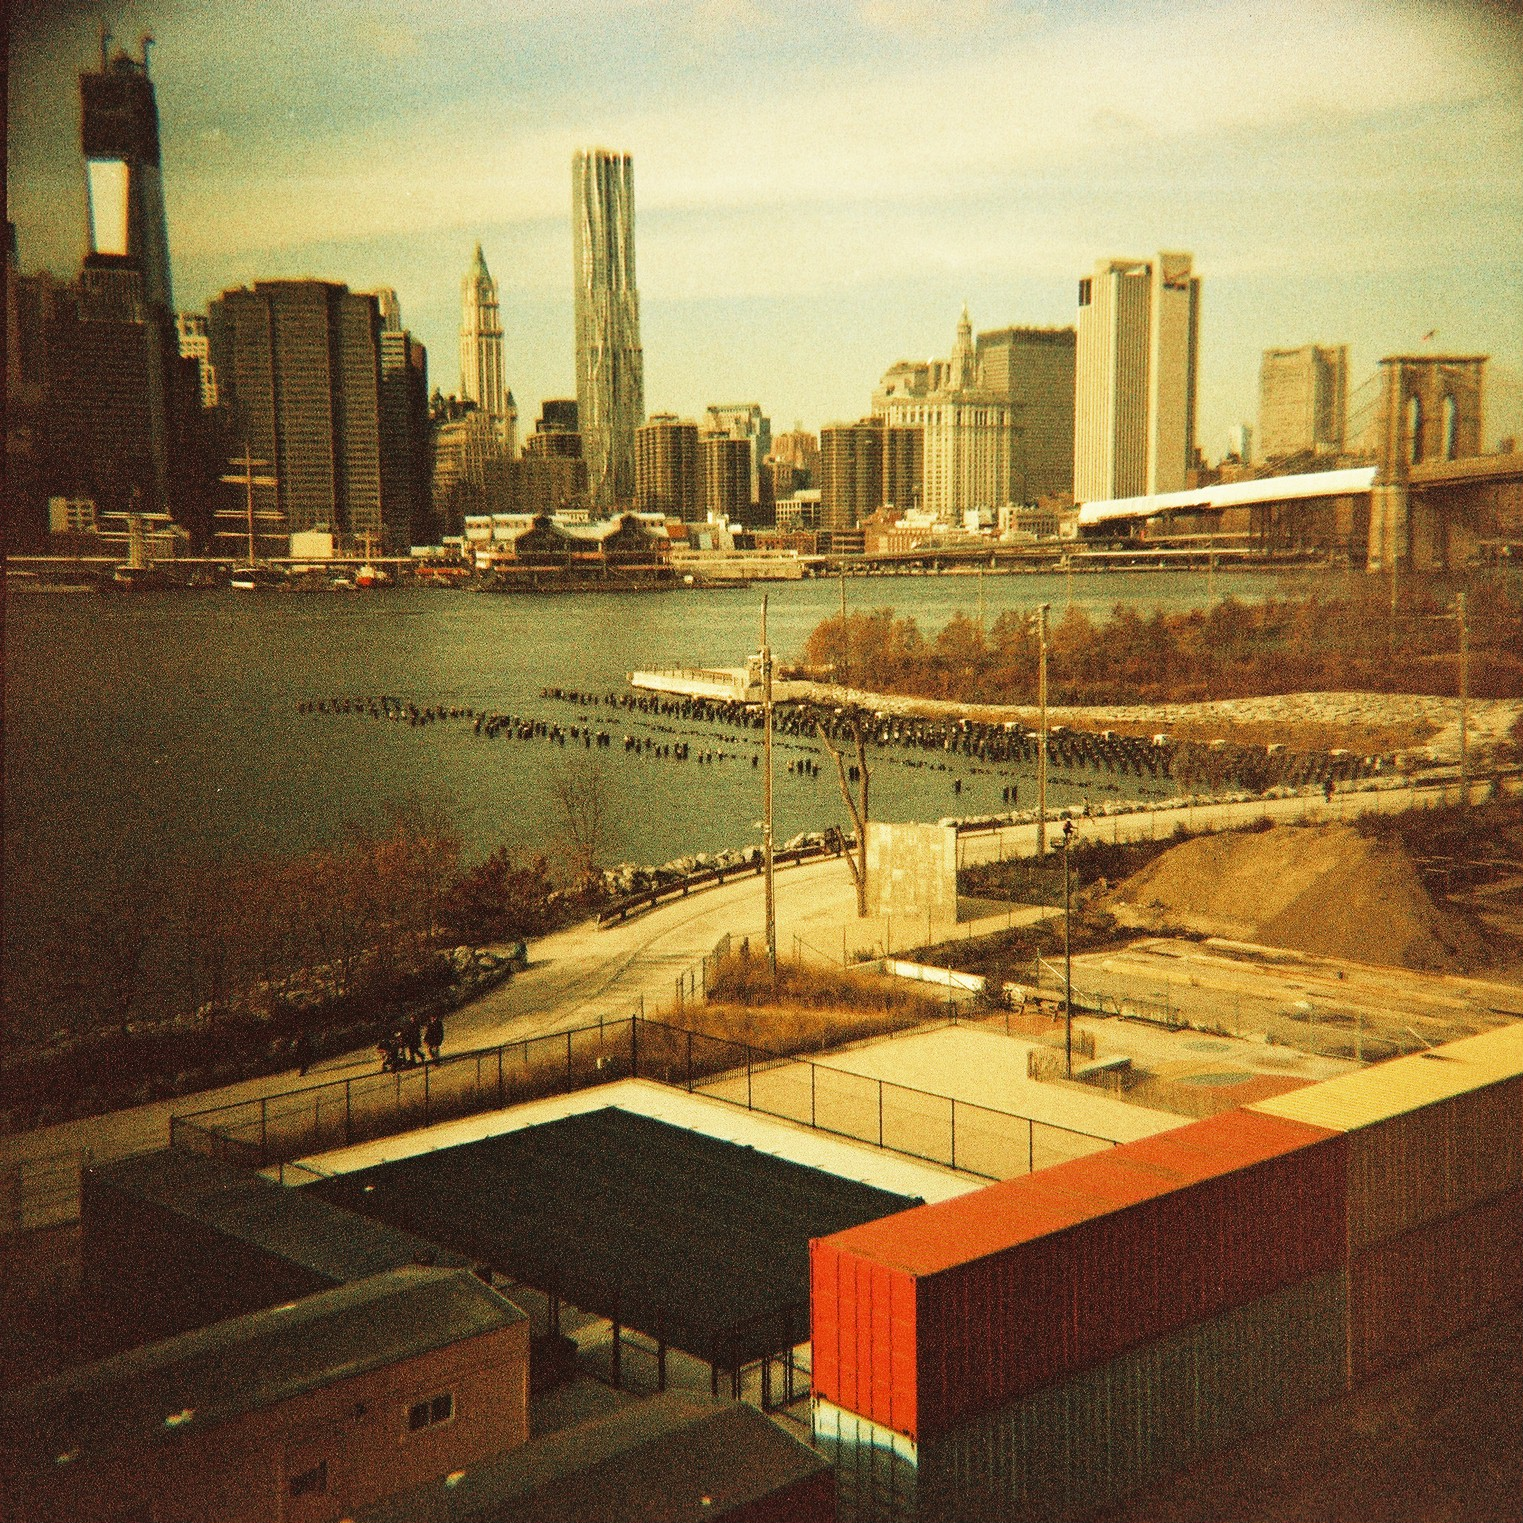 Frank Gehry building from Brooklyn, NYC